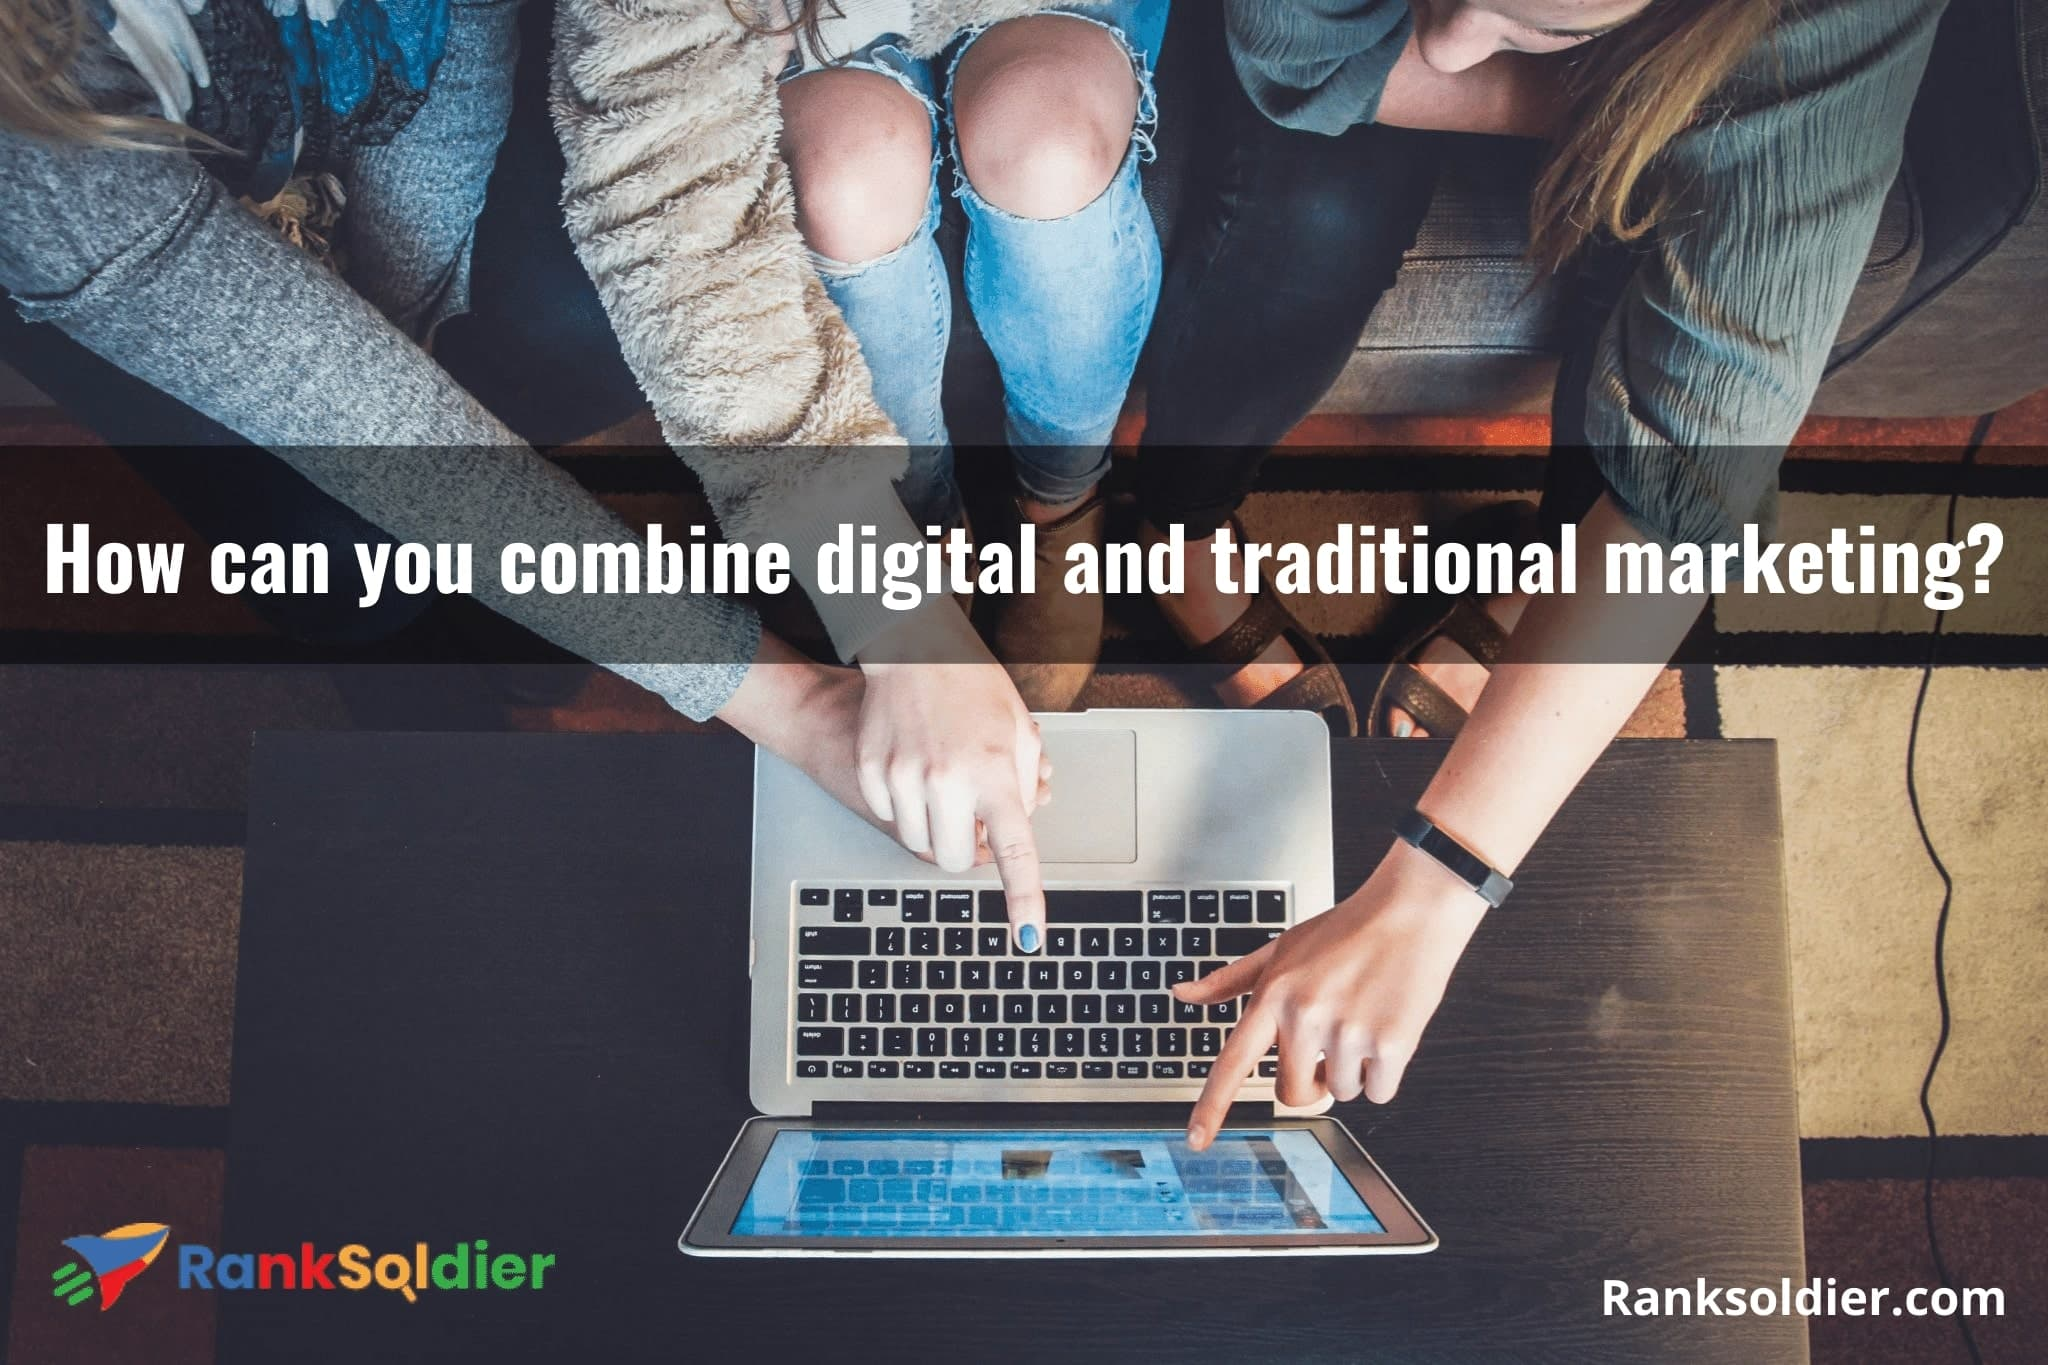 How can you combine digital and traditional marketing